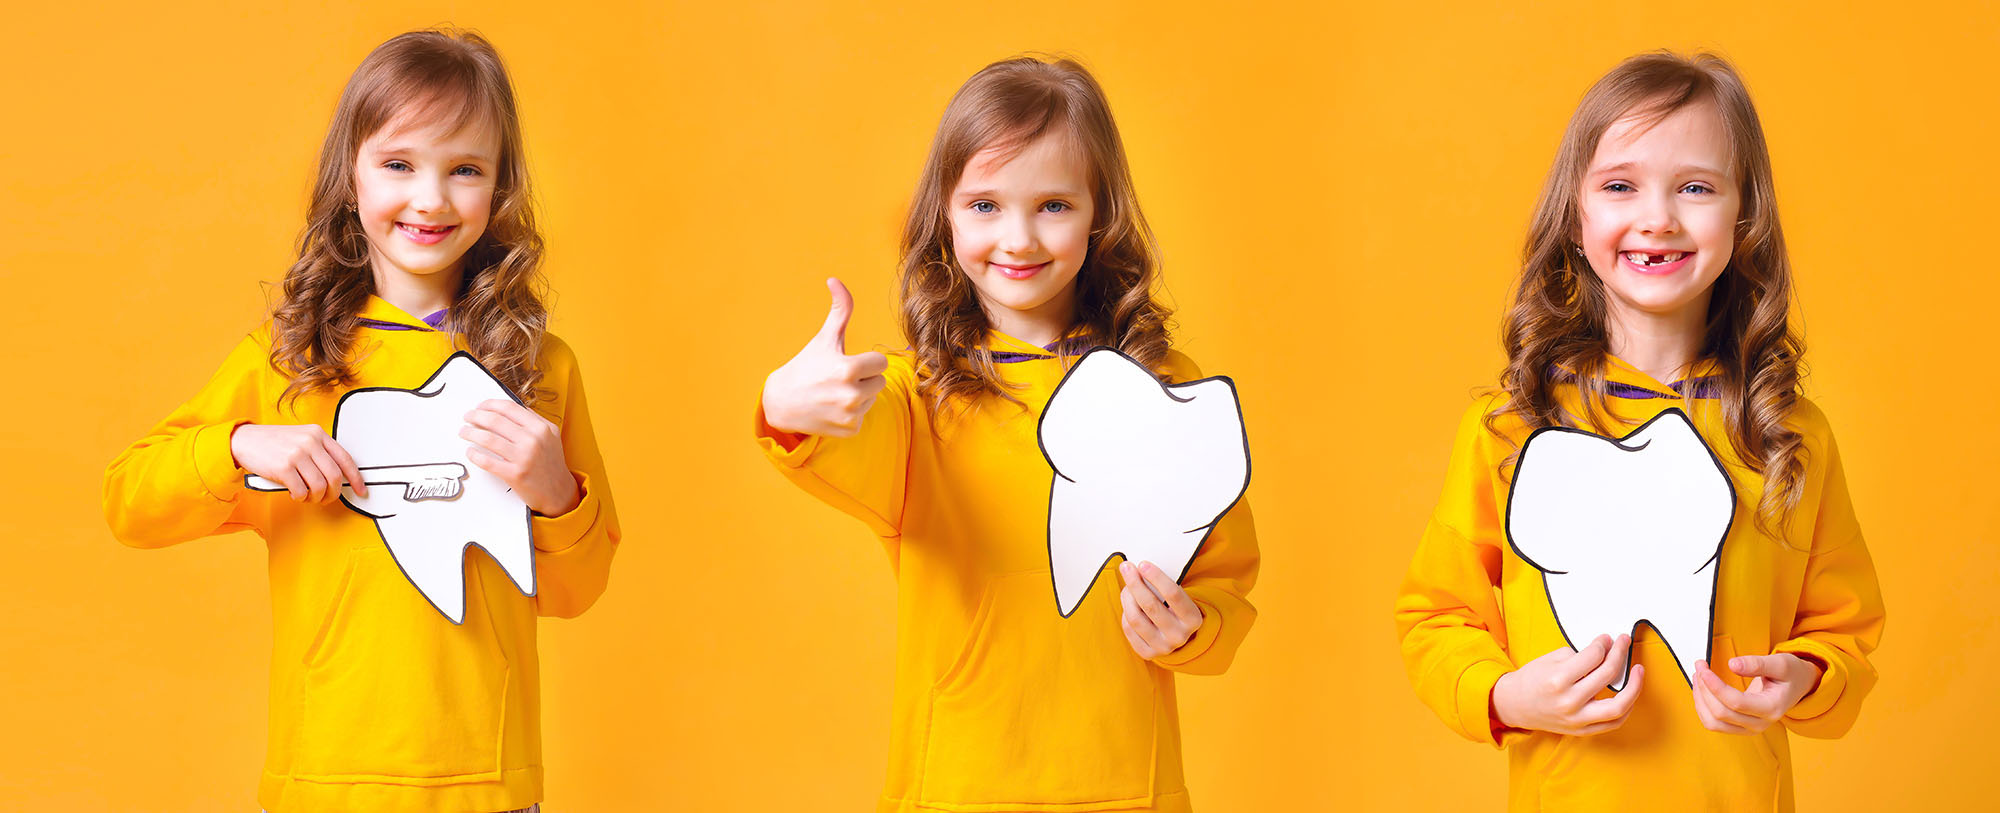 Best Dentist in Sherman,Tx : Five Star Dental Care at Dr. Lance Johnson Family Dentistry: All Ages Dental Care Happy Kids Fun Dental Office